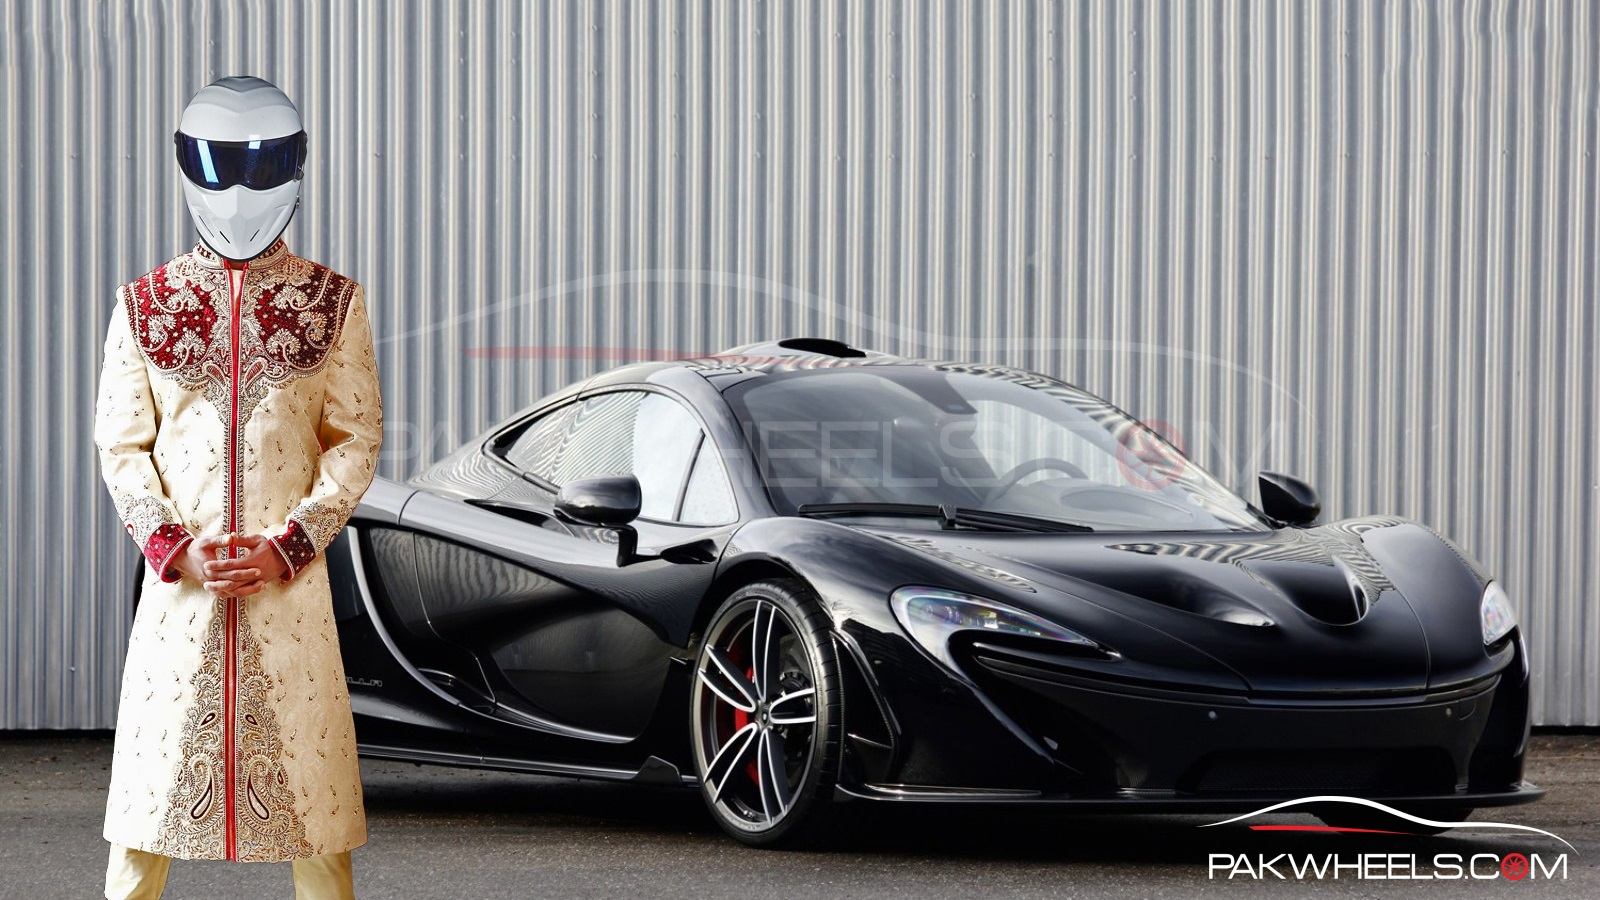 McLaren P1 in Pakistan 4